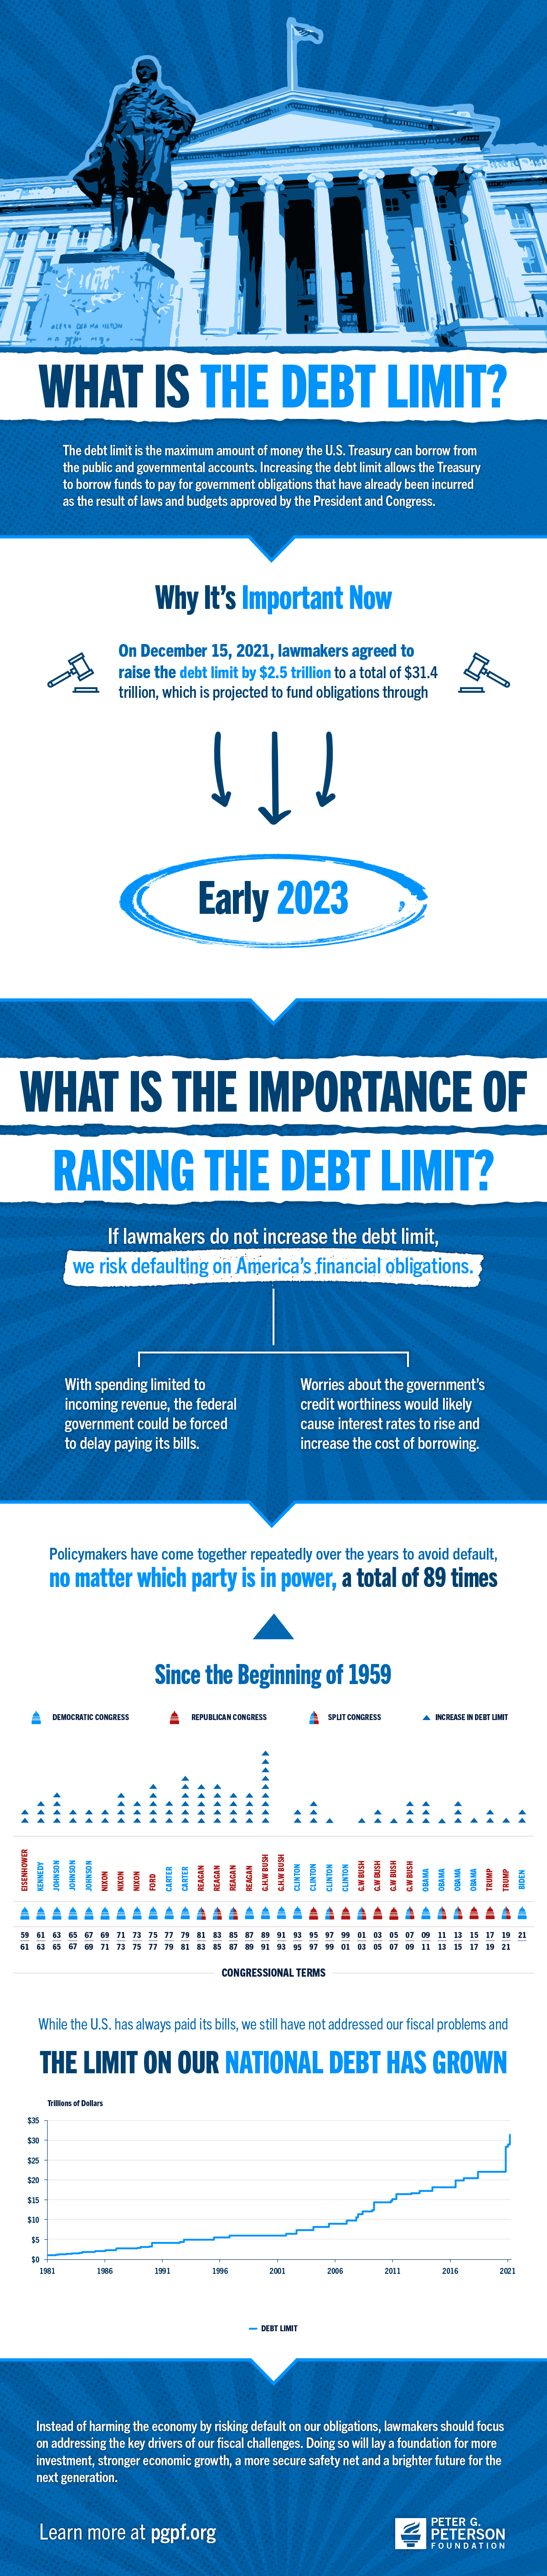 What is the Debt Limit? What is the Debt Ceiling?